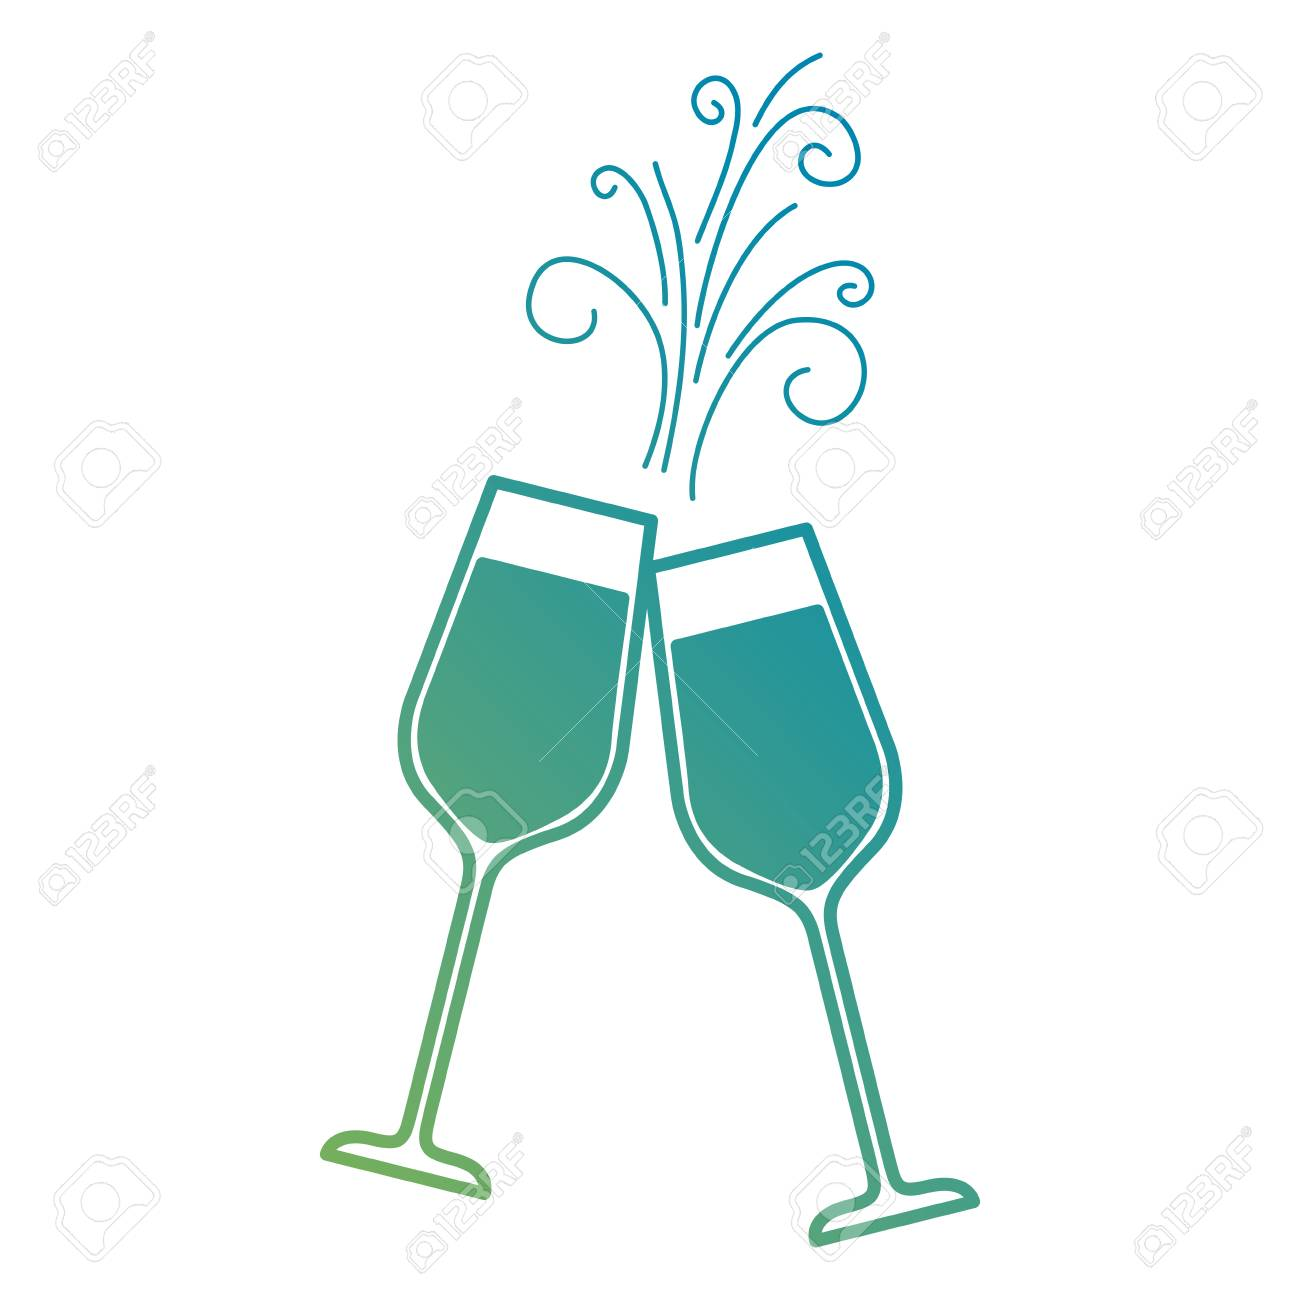 c613decd294 pair of champagne glass cheers drink sparkles vector illustration Stock  Vector - 90133173